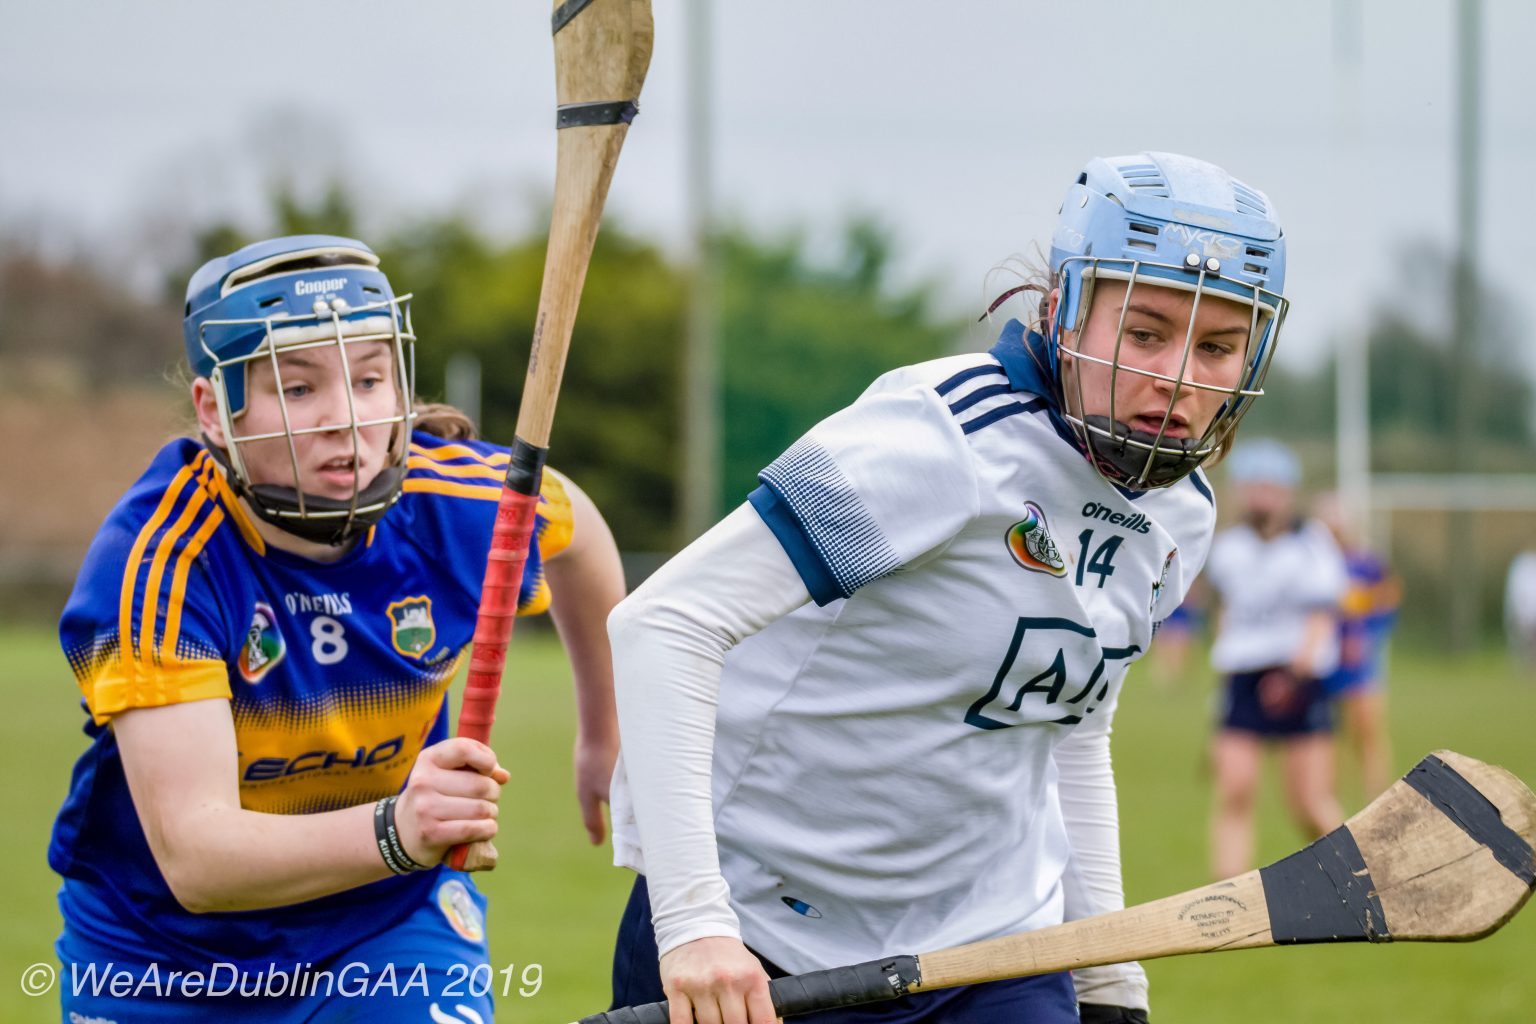 Dublin Camogie player in a white jersey with navy trim and light blue helmet breaks away from a Tipperary player in a dark blue jersey with yellow band across the middle and dark blue helmet during the championship fixture